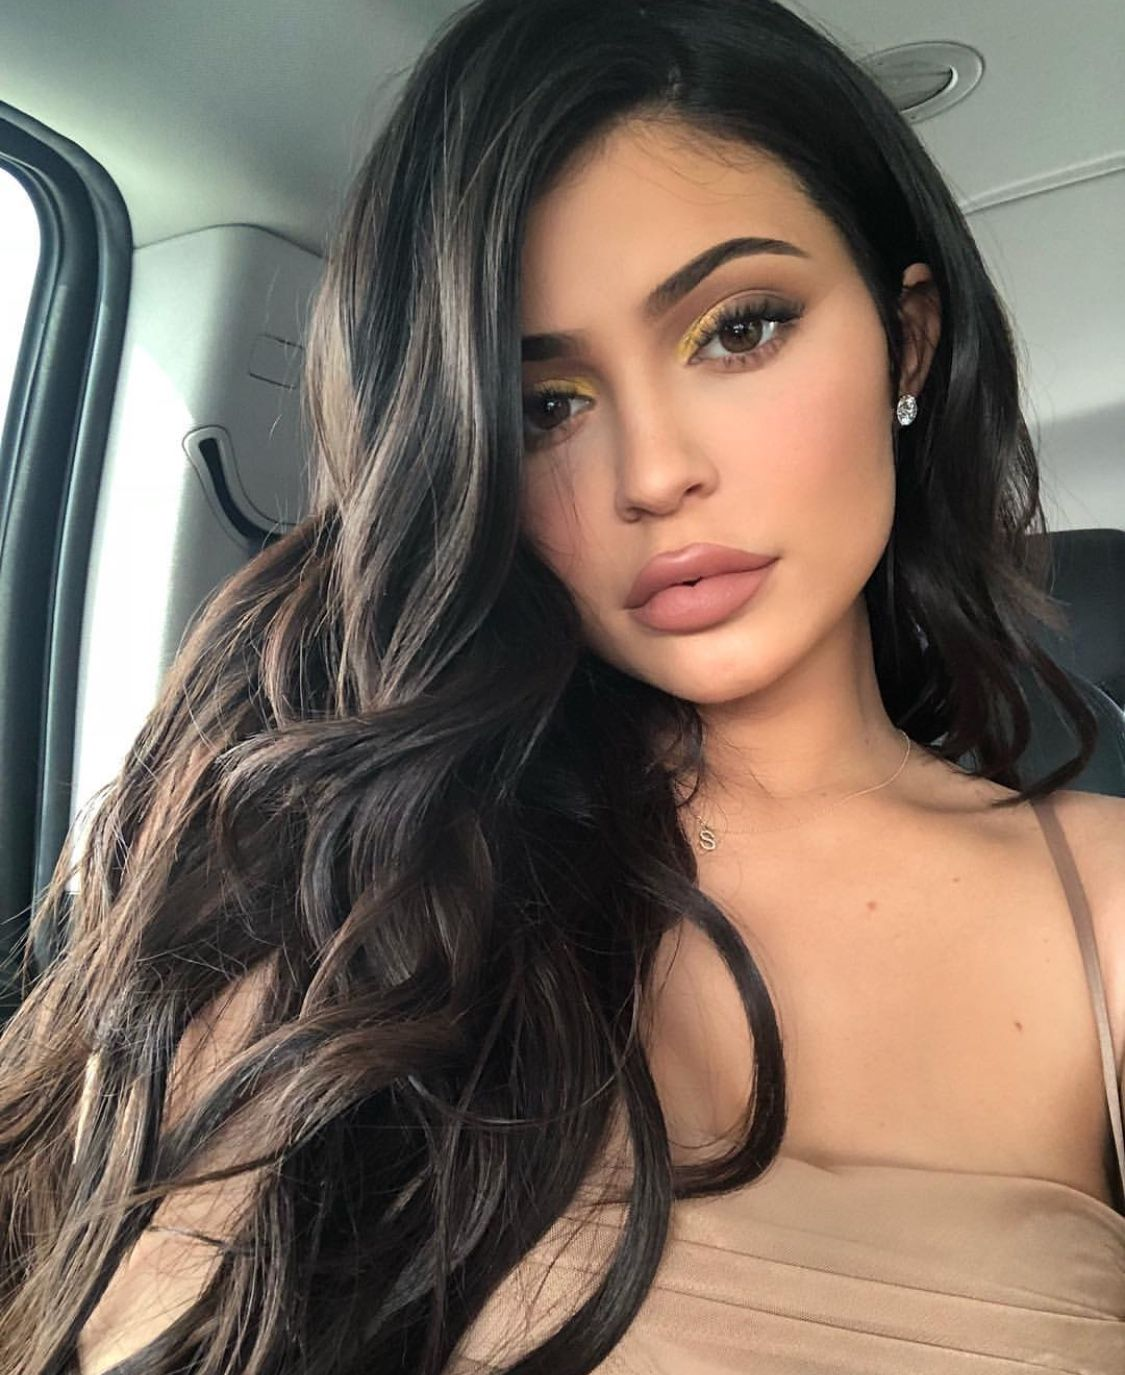 Selfie Kylie Jenner nudes (37 foto and video), Tits, Cleavage, Feet, lingerie 2018